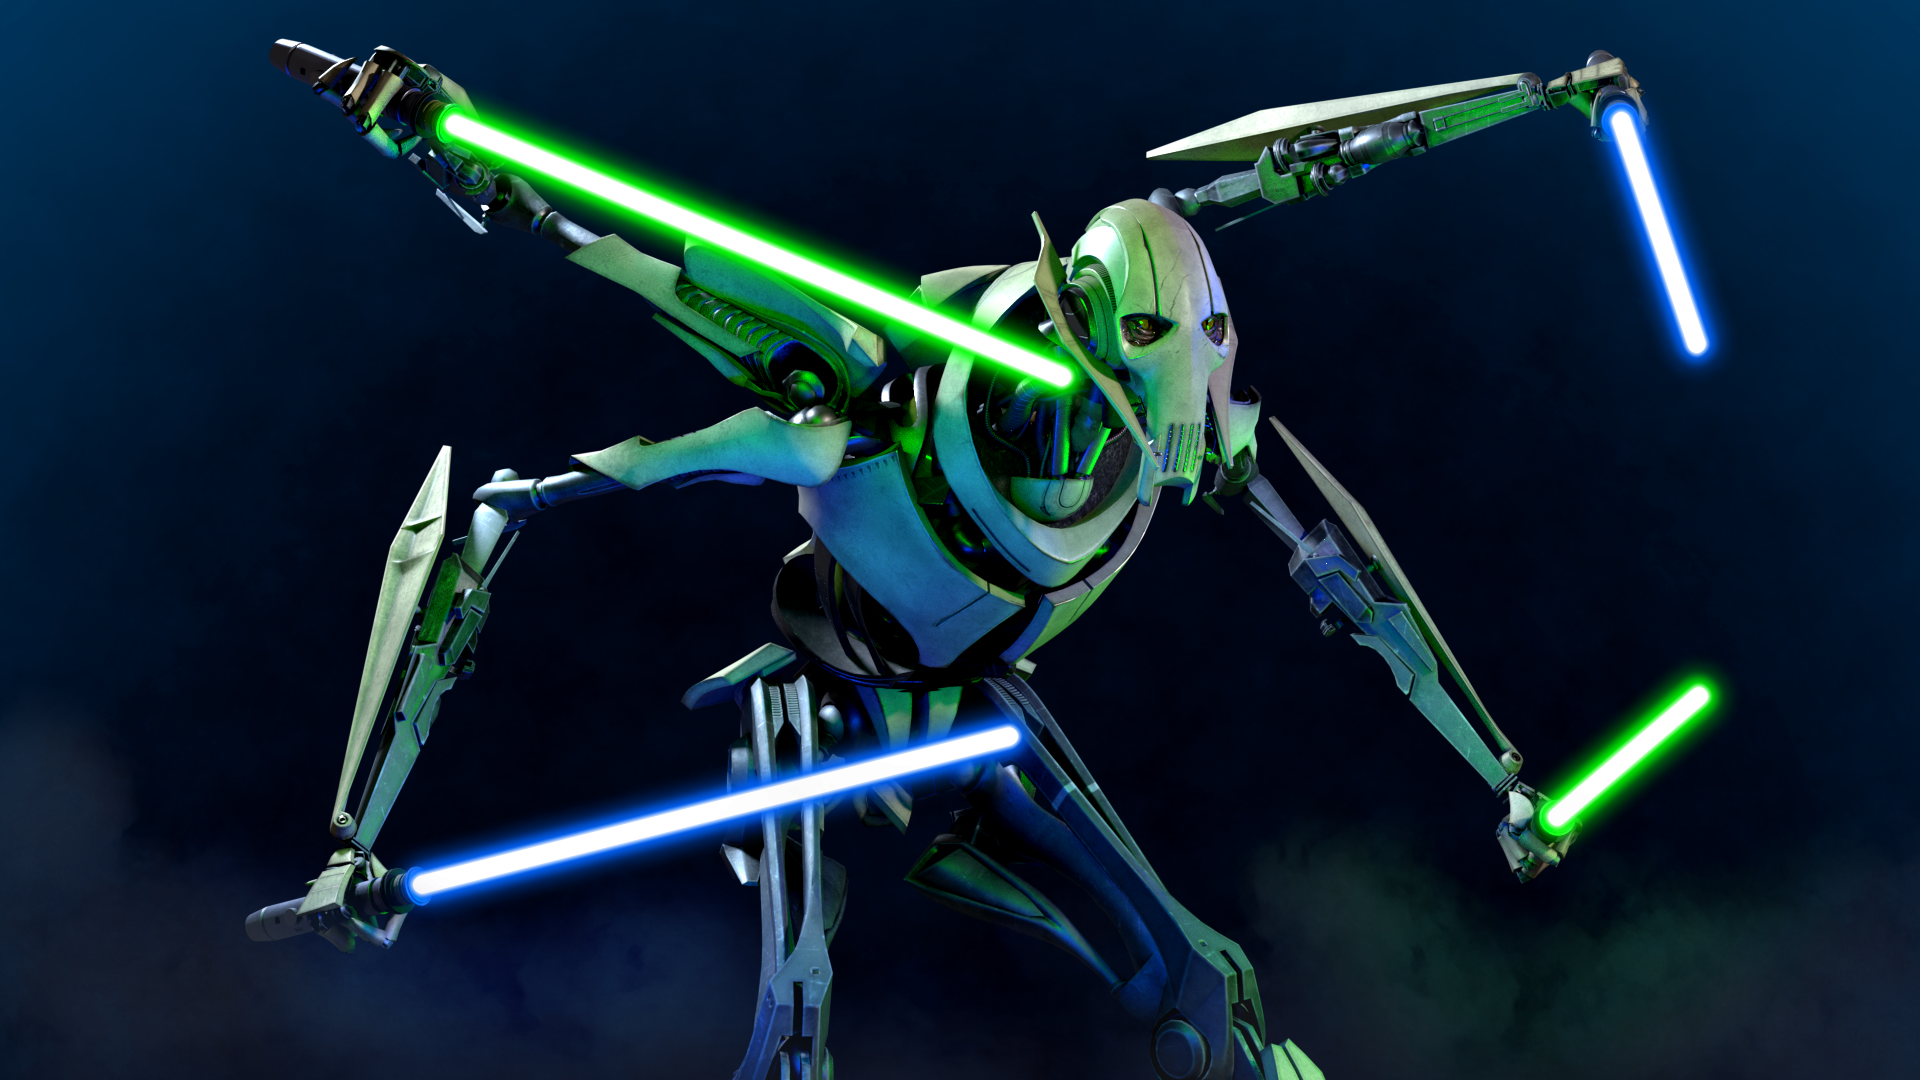 Screen Accurate General Grievous At Star Wars Battlefront Ii 2017 Nexus Mods And Community Star Wars Games Star Wars Clone Wars Star Wars Characters